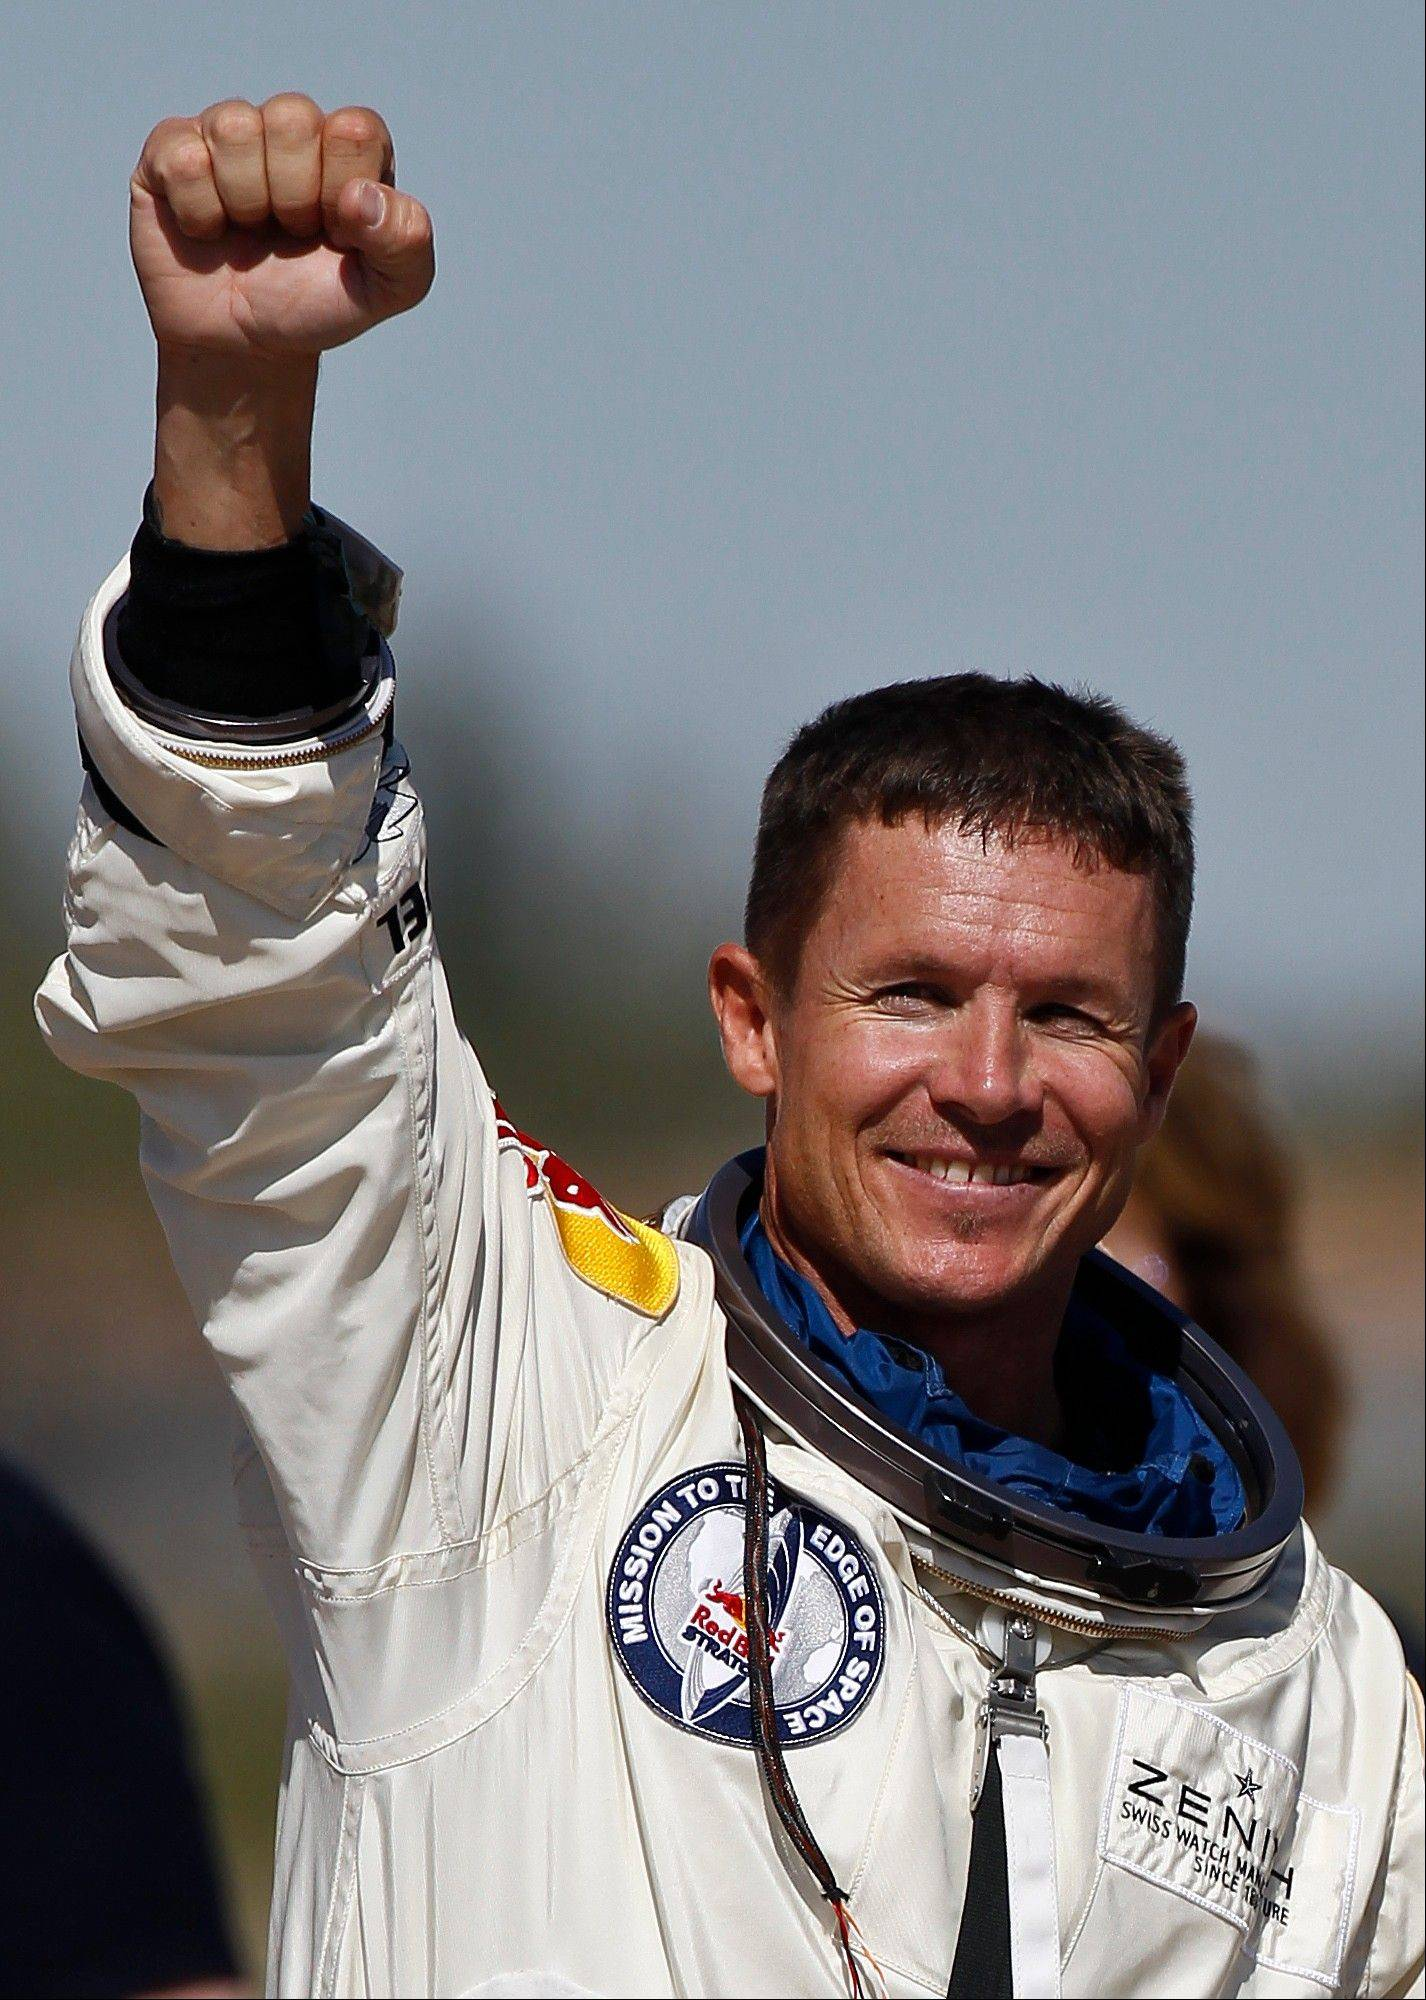 Felix Baumgartner, of Austria, pumps his fist to the crowd after successfully jumping from a space capsule lifted by a helium balloon at a height of just over 128,000 feet above the Earth's surface.